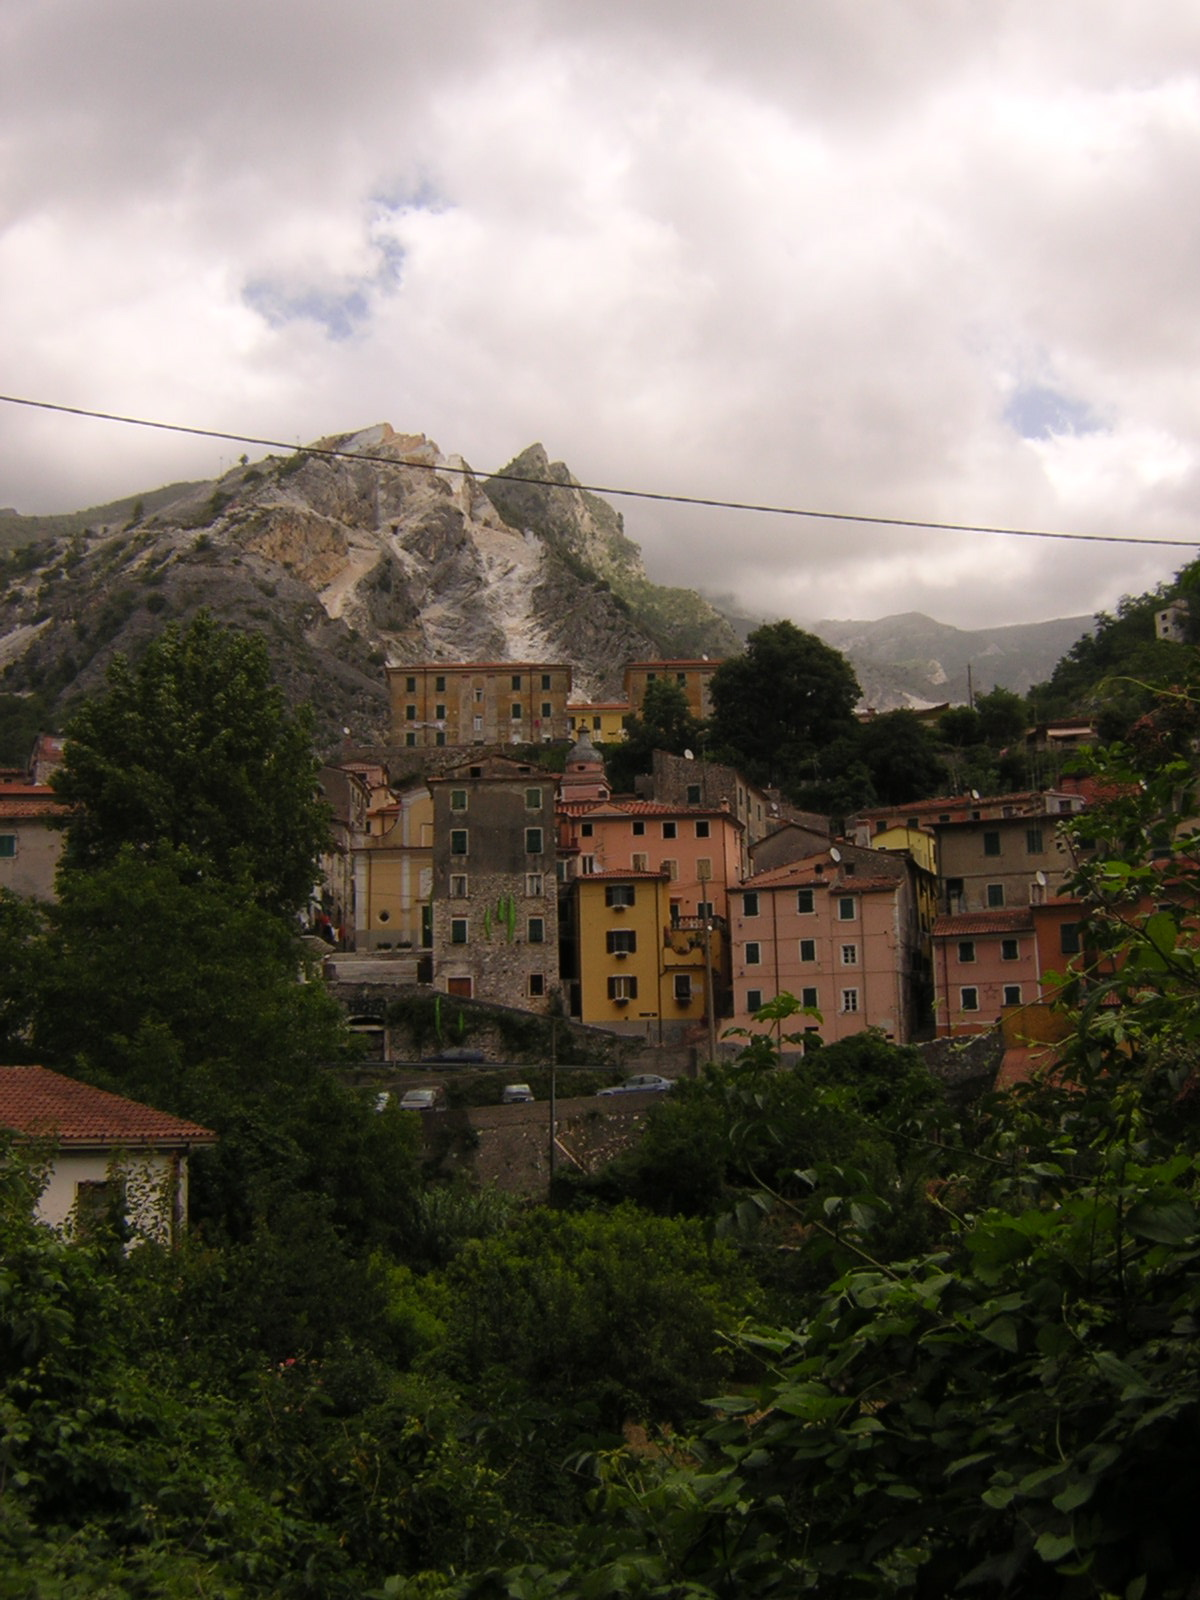 Torano, Italy below the Quarries of the Alpi Apuani